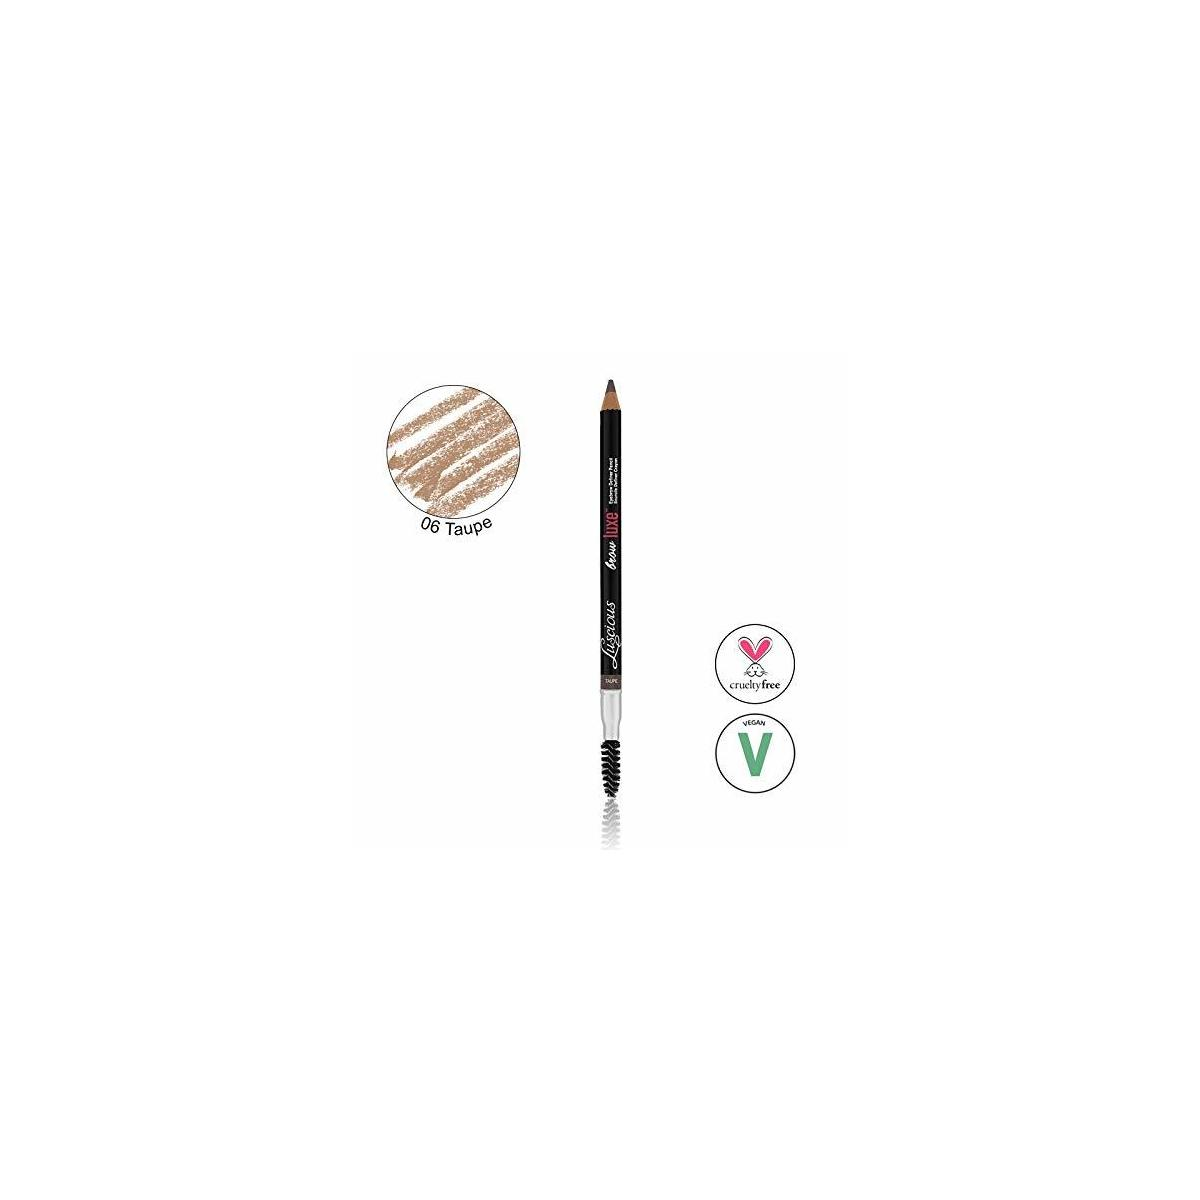 Brow Luxe Definer Pencil by True + Luscious - Vegan, Paraben Free, Cruelty Free Eyebrow Pencil with Sweat-Proof Formula - 0.07 oz (Shade: Taupe)